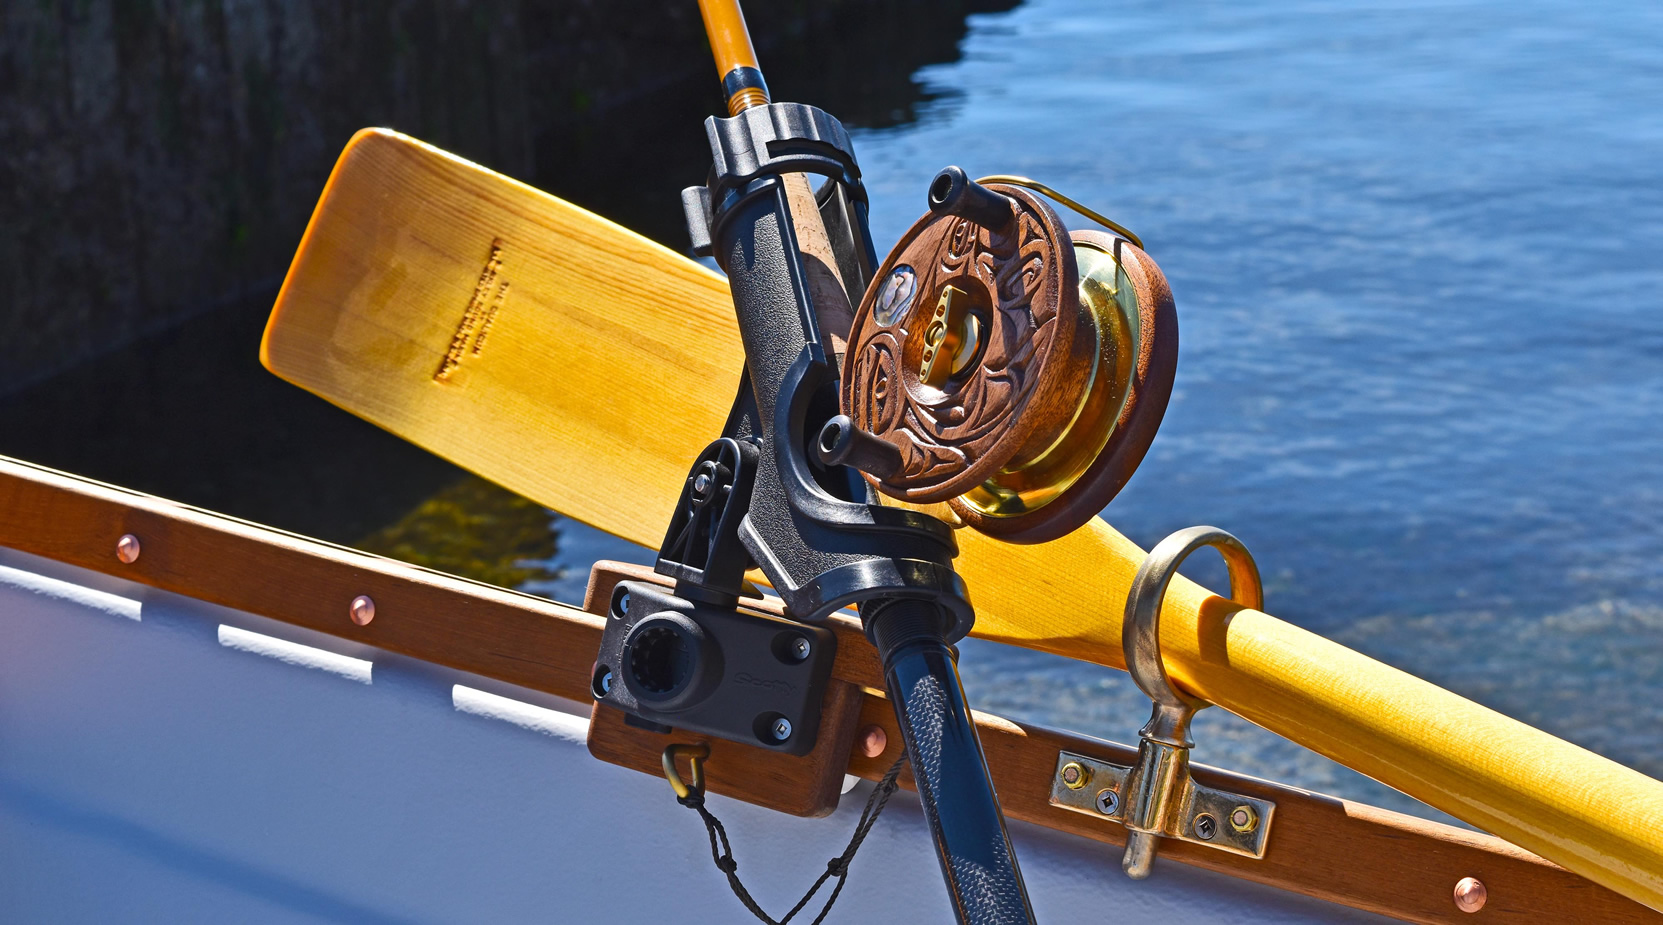 Peetz Fishing Reel Whitehall Tyee Spirit 14 Fishing Rowing boats